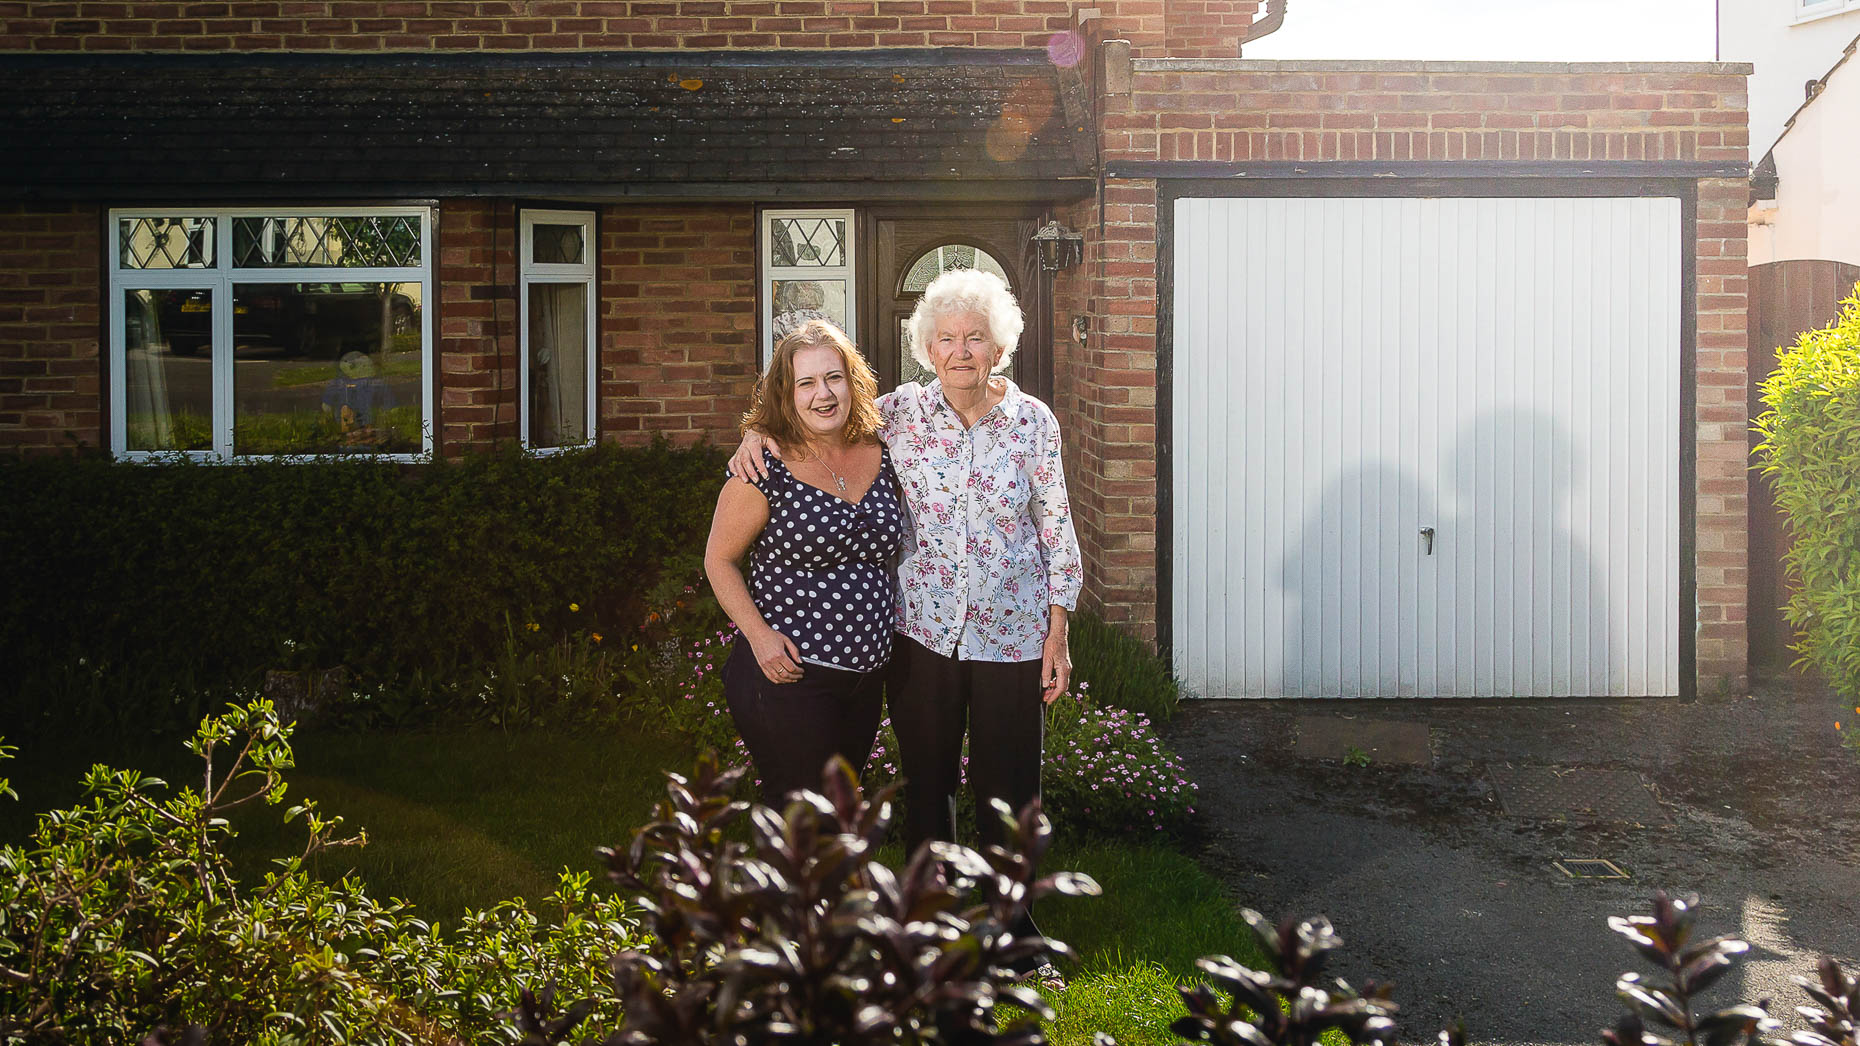 Ashtead Doorstep Portraits 19